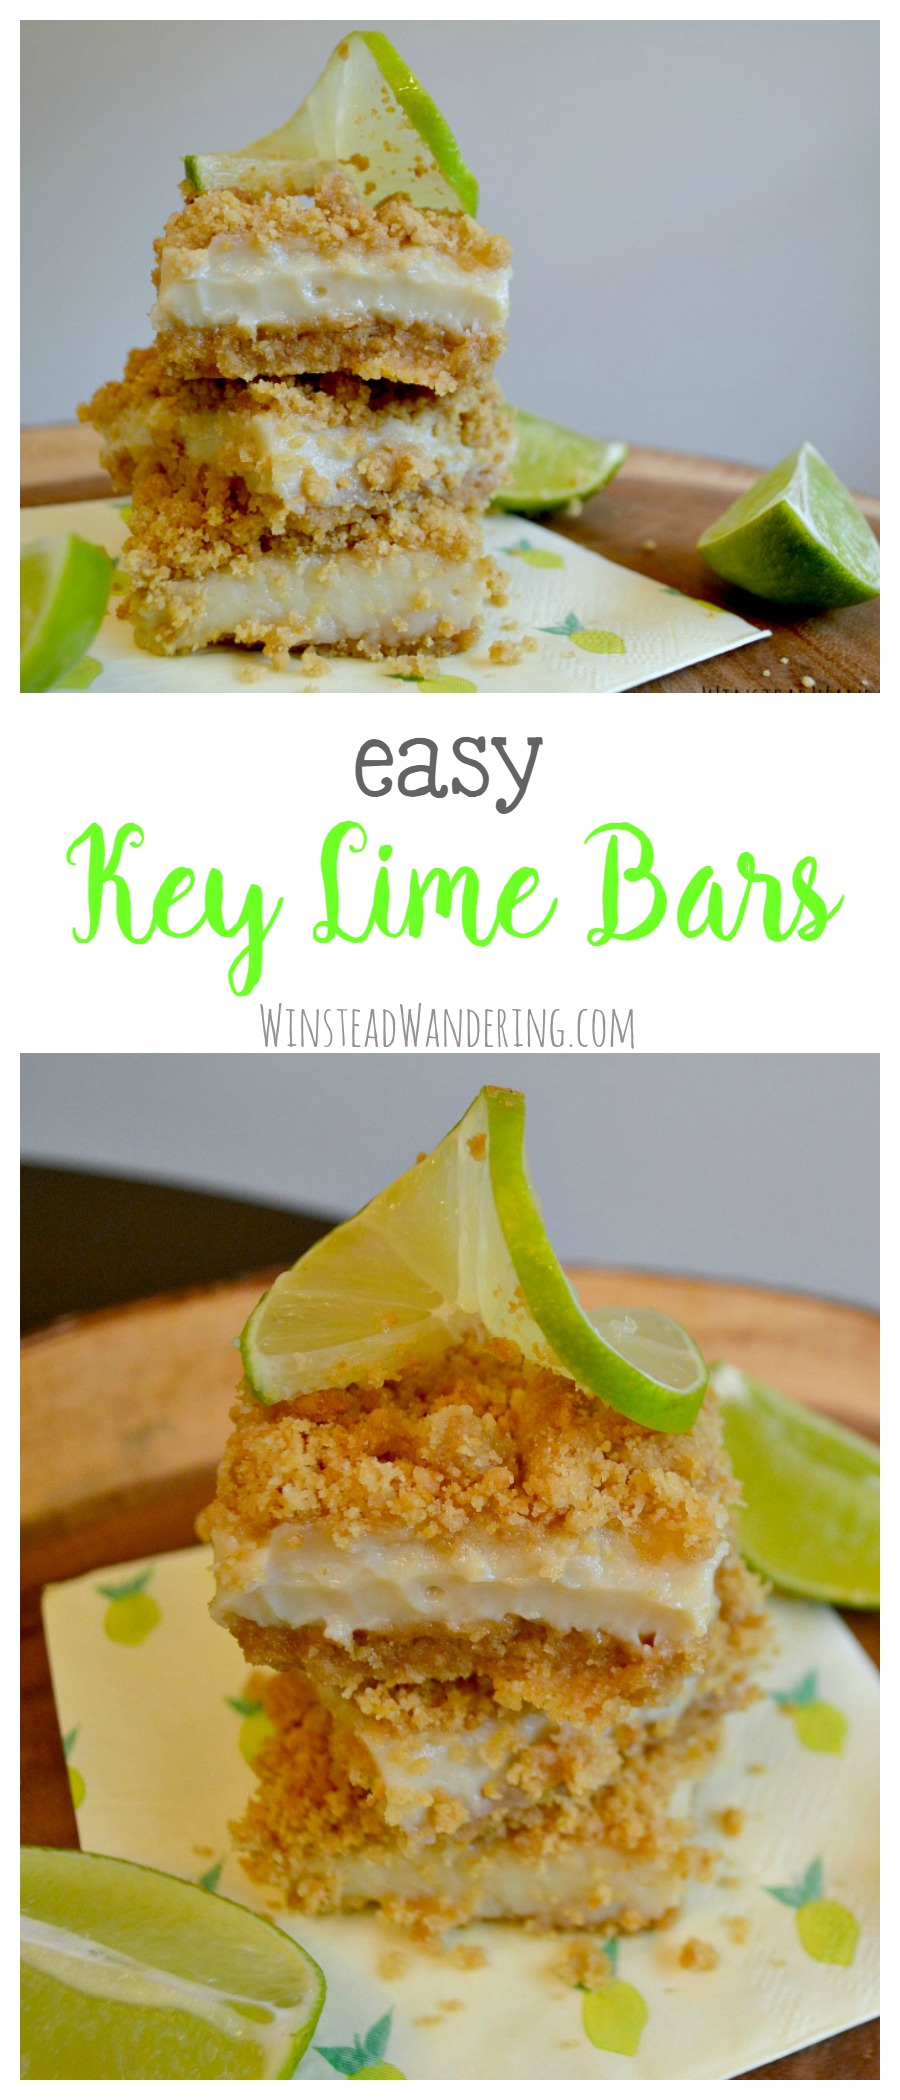 With an easy graham cracker crust and a creamy three-ingredient filling, easy key lime bars are rich, sweet, and perfectly tart.